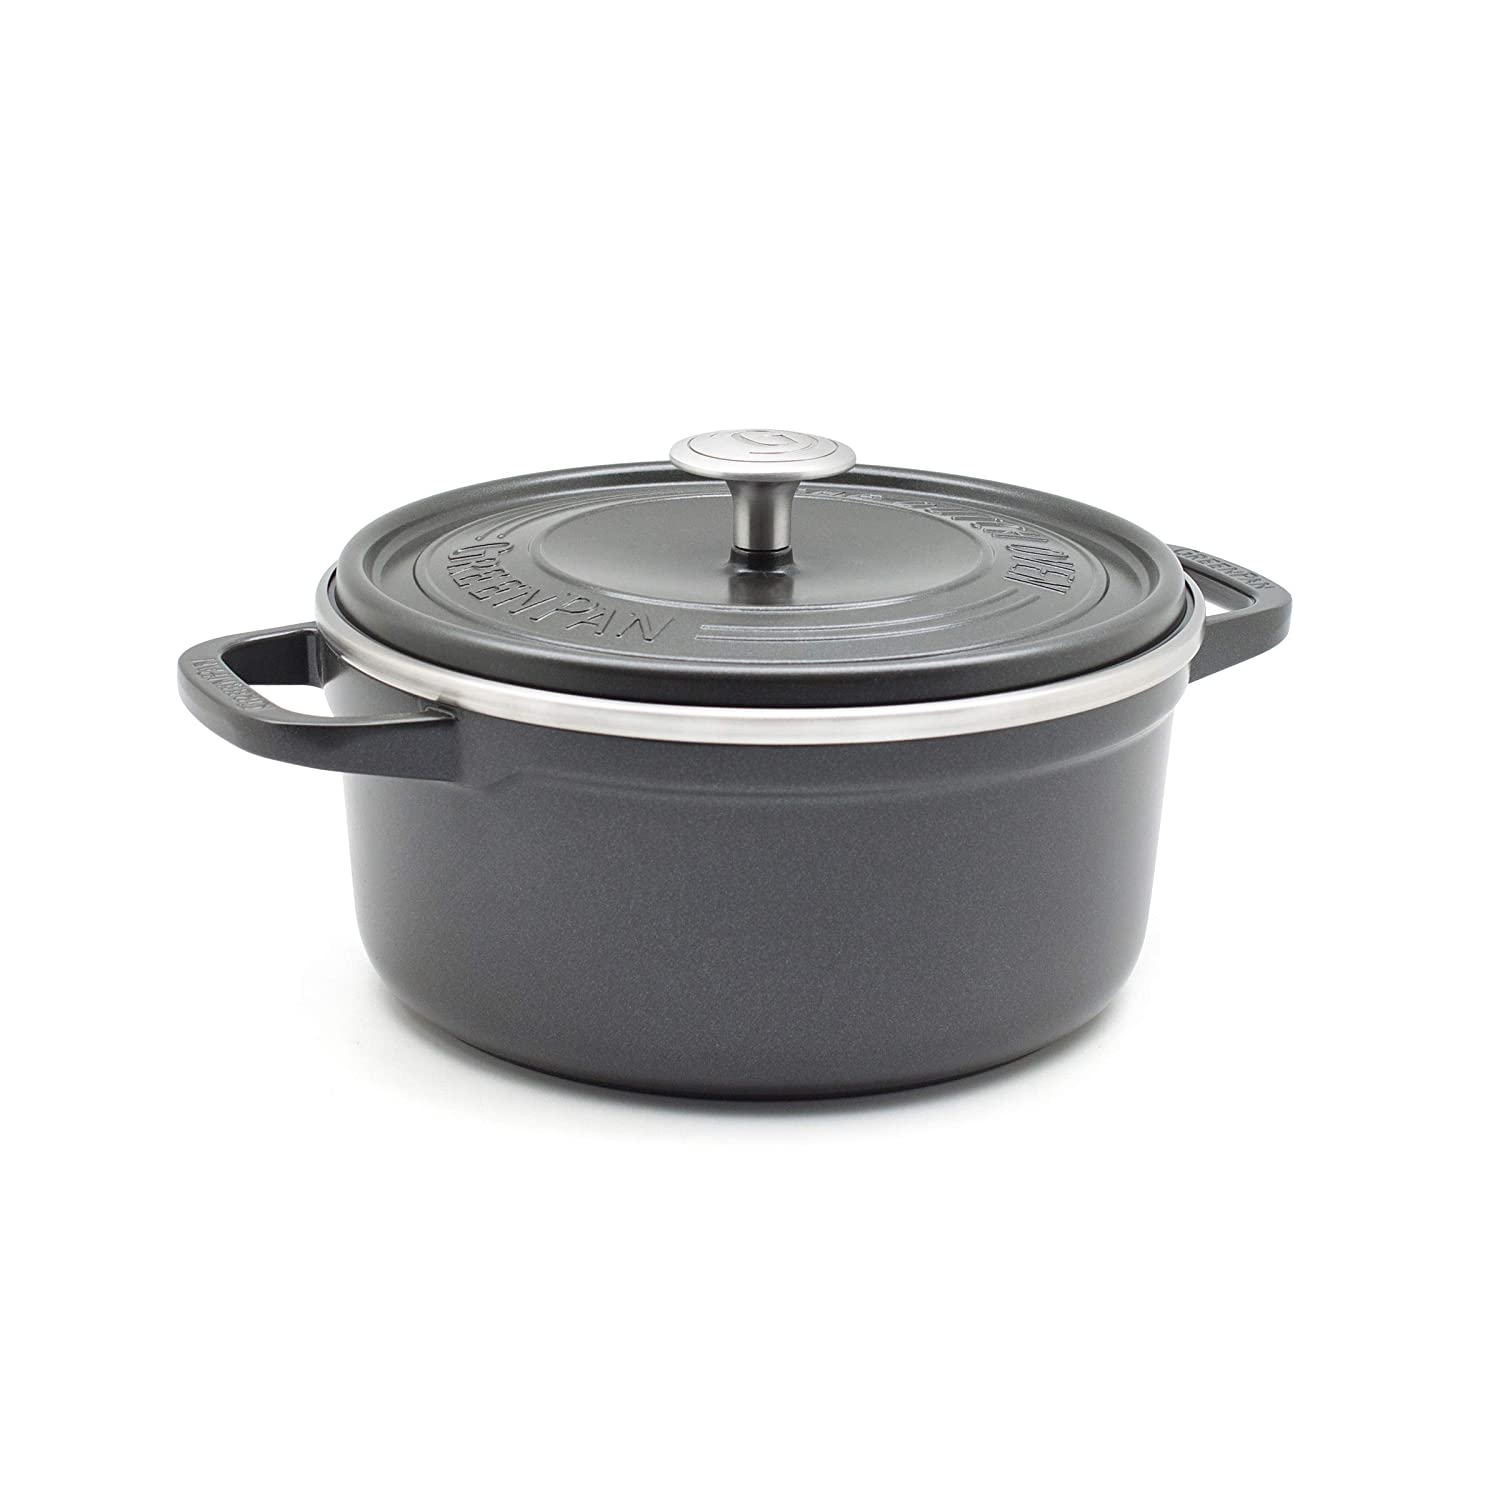 GreenPan CC001927-001 SimmerLite 1 Dutch Oven with Lid 3.5QT Slate